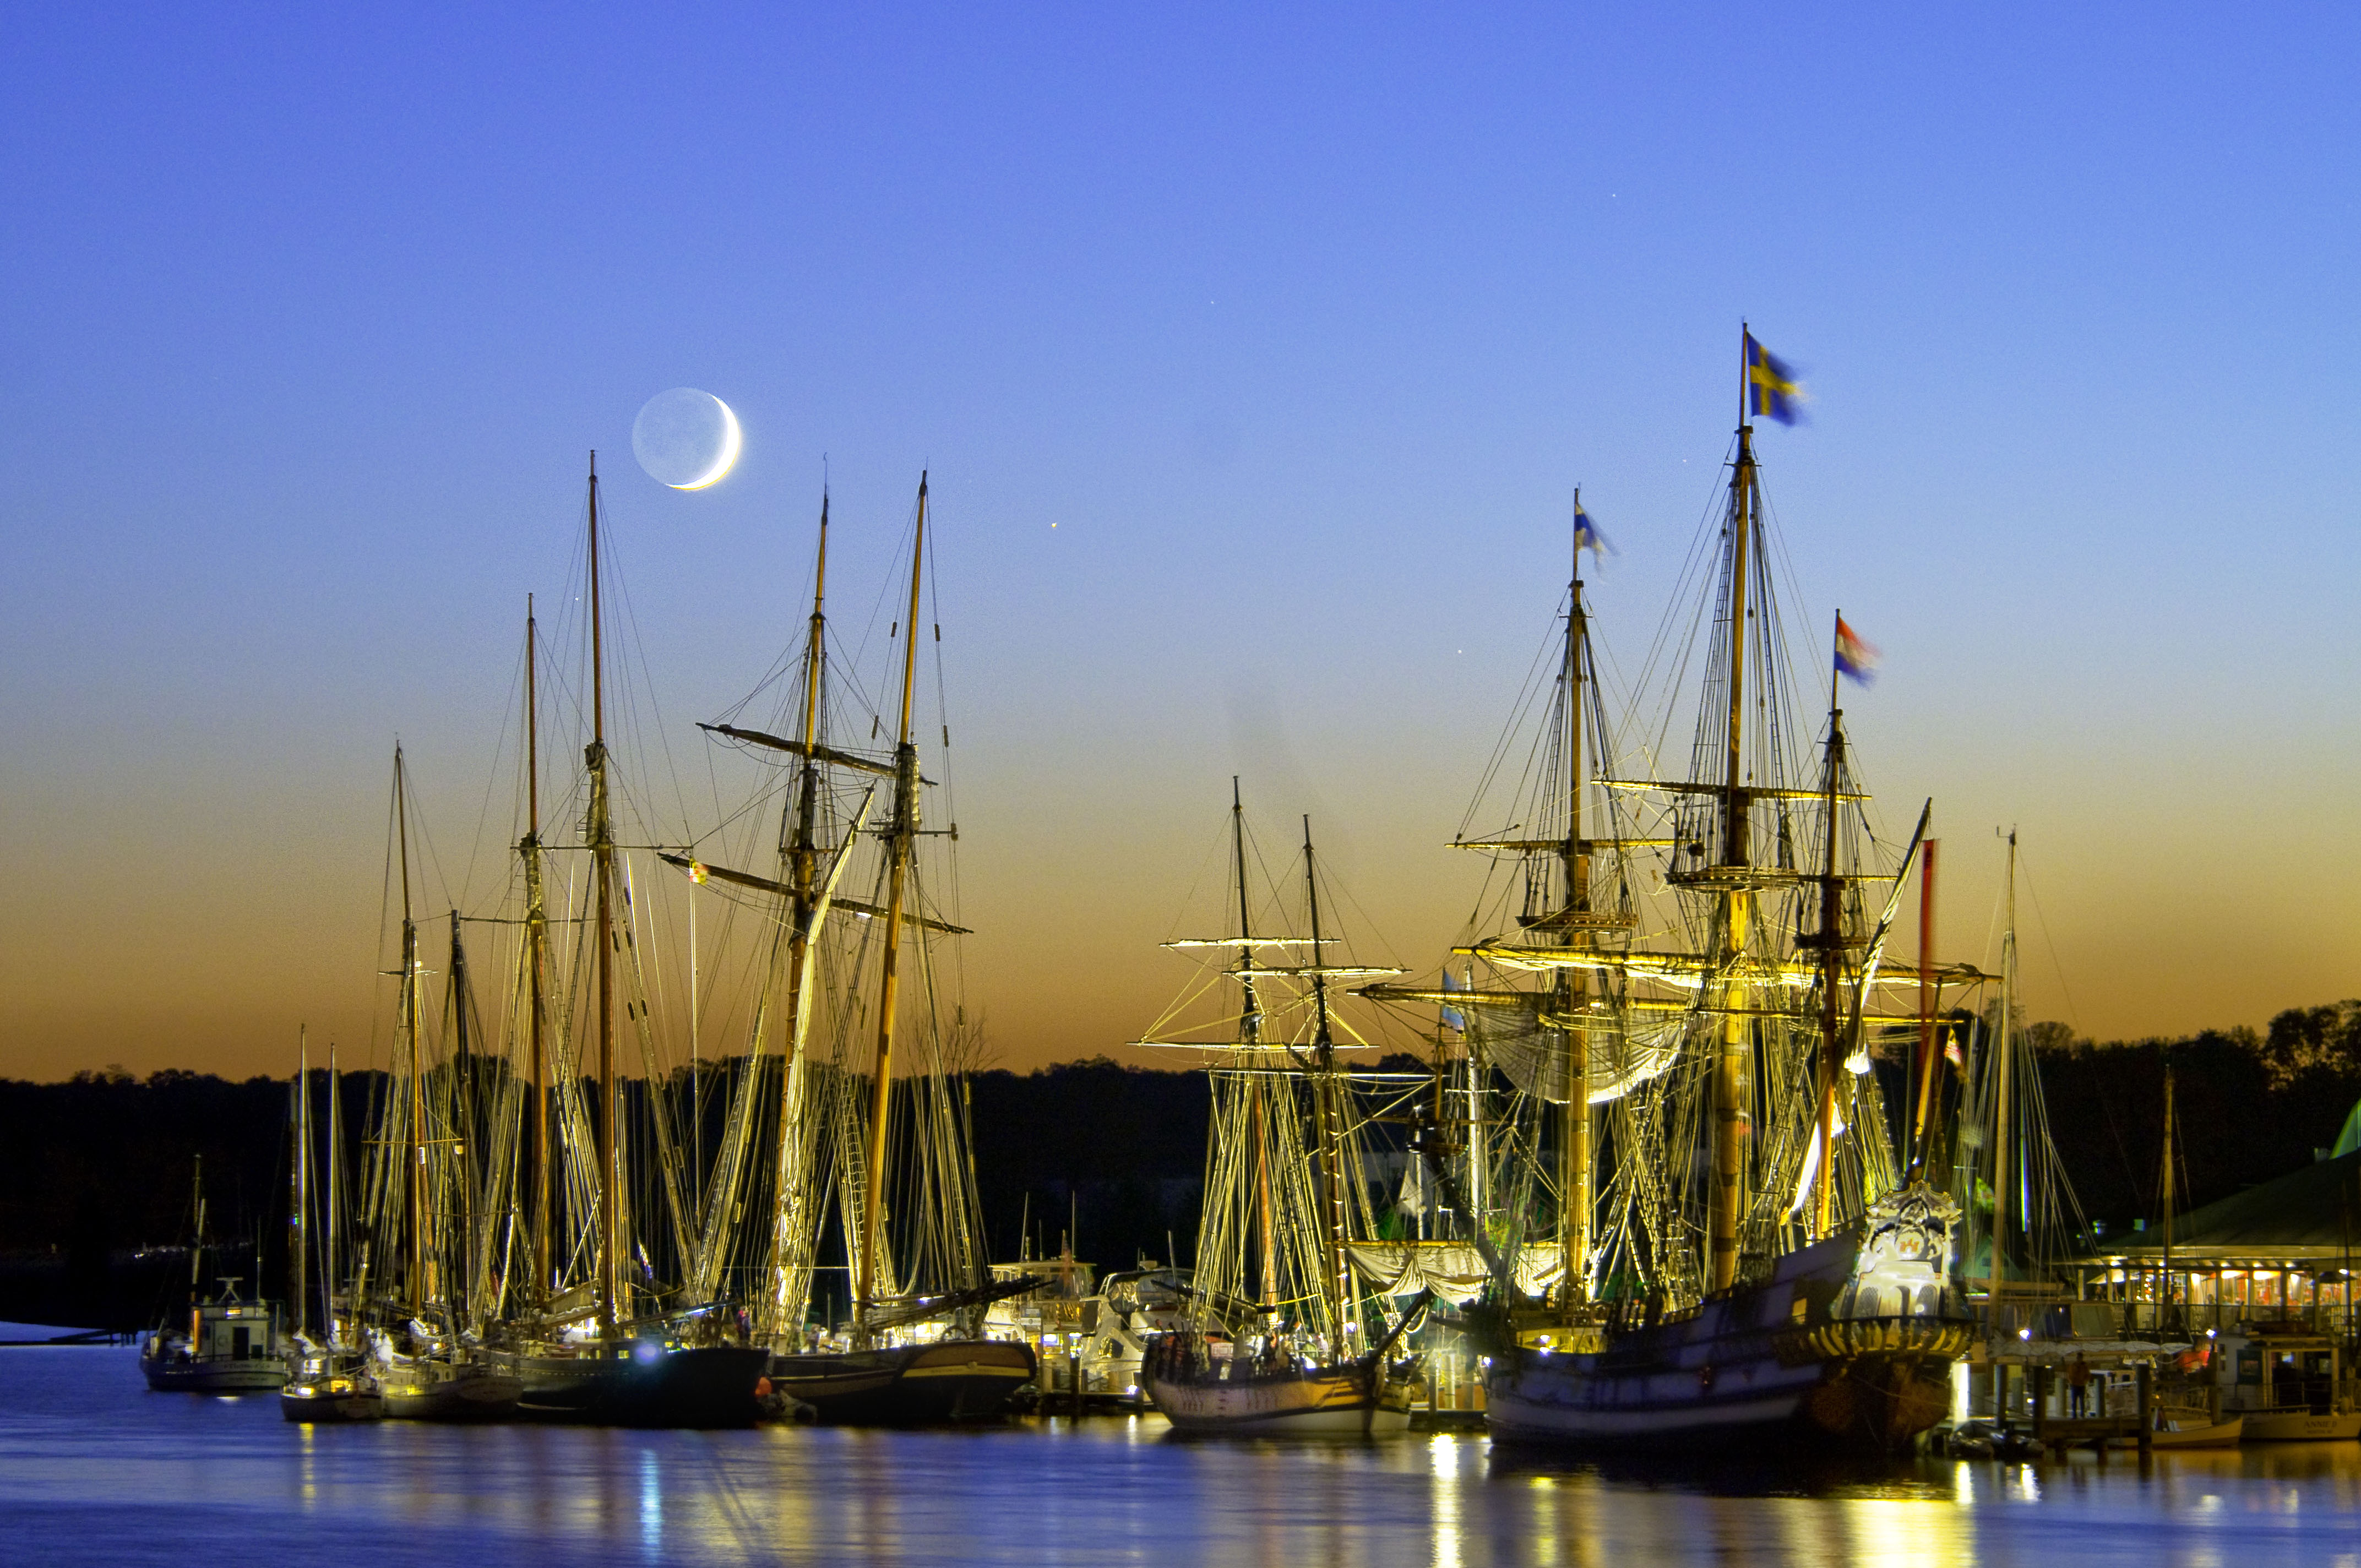 Sultana Education Foundation's Downrigging Weekend Tall Ship and Wooden Boat Festival